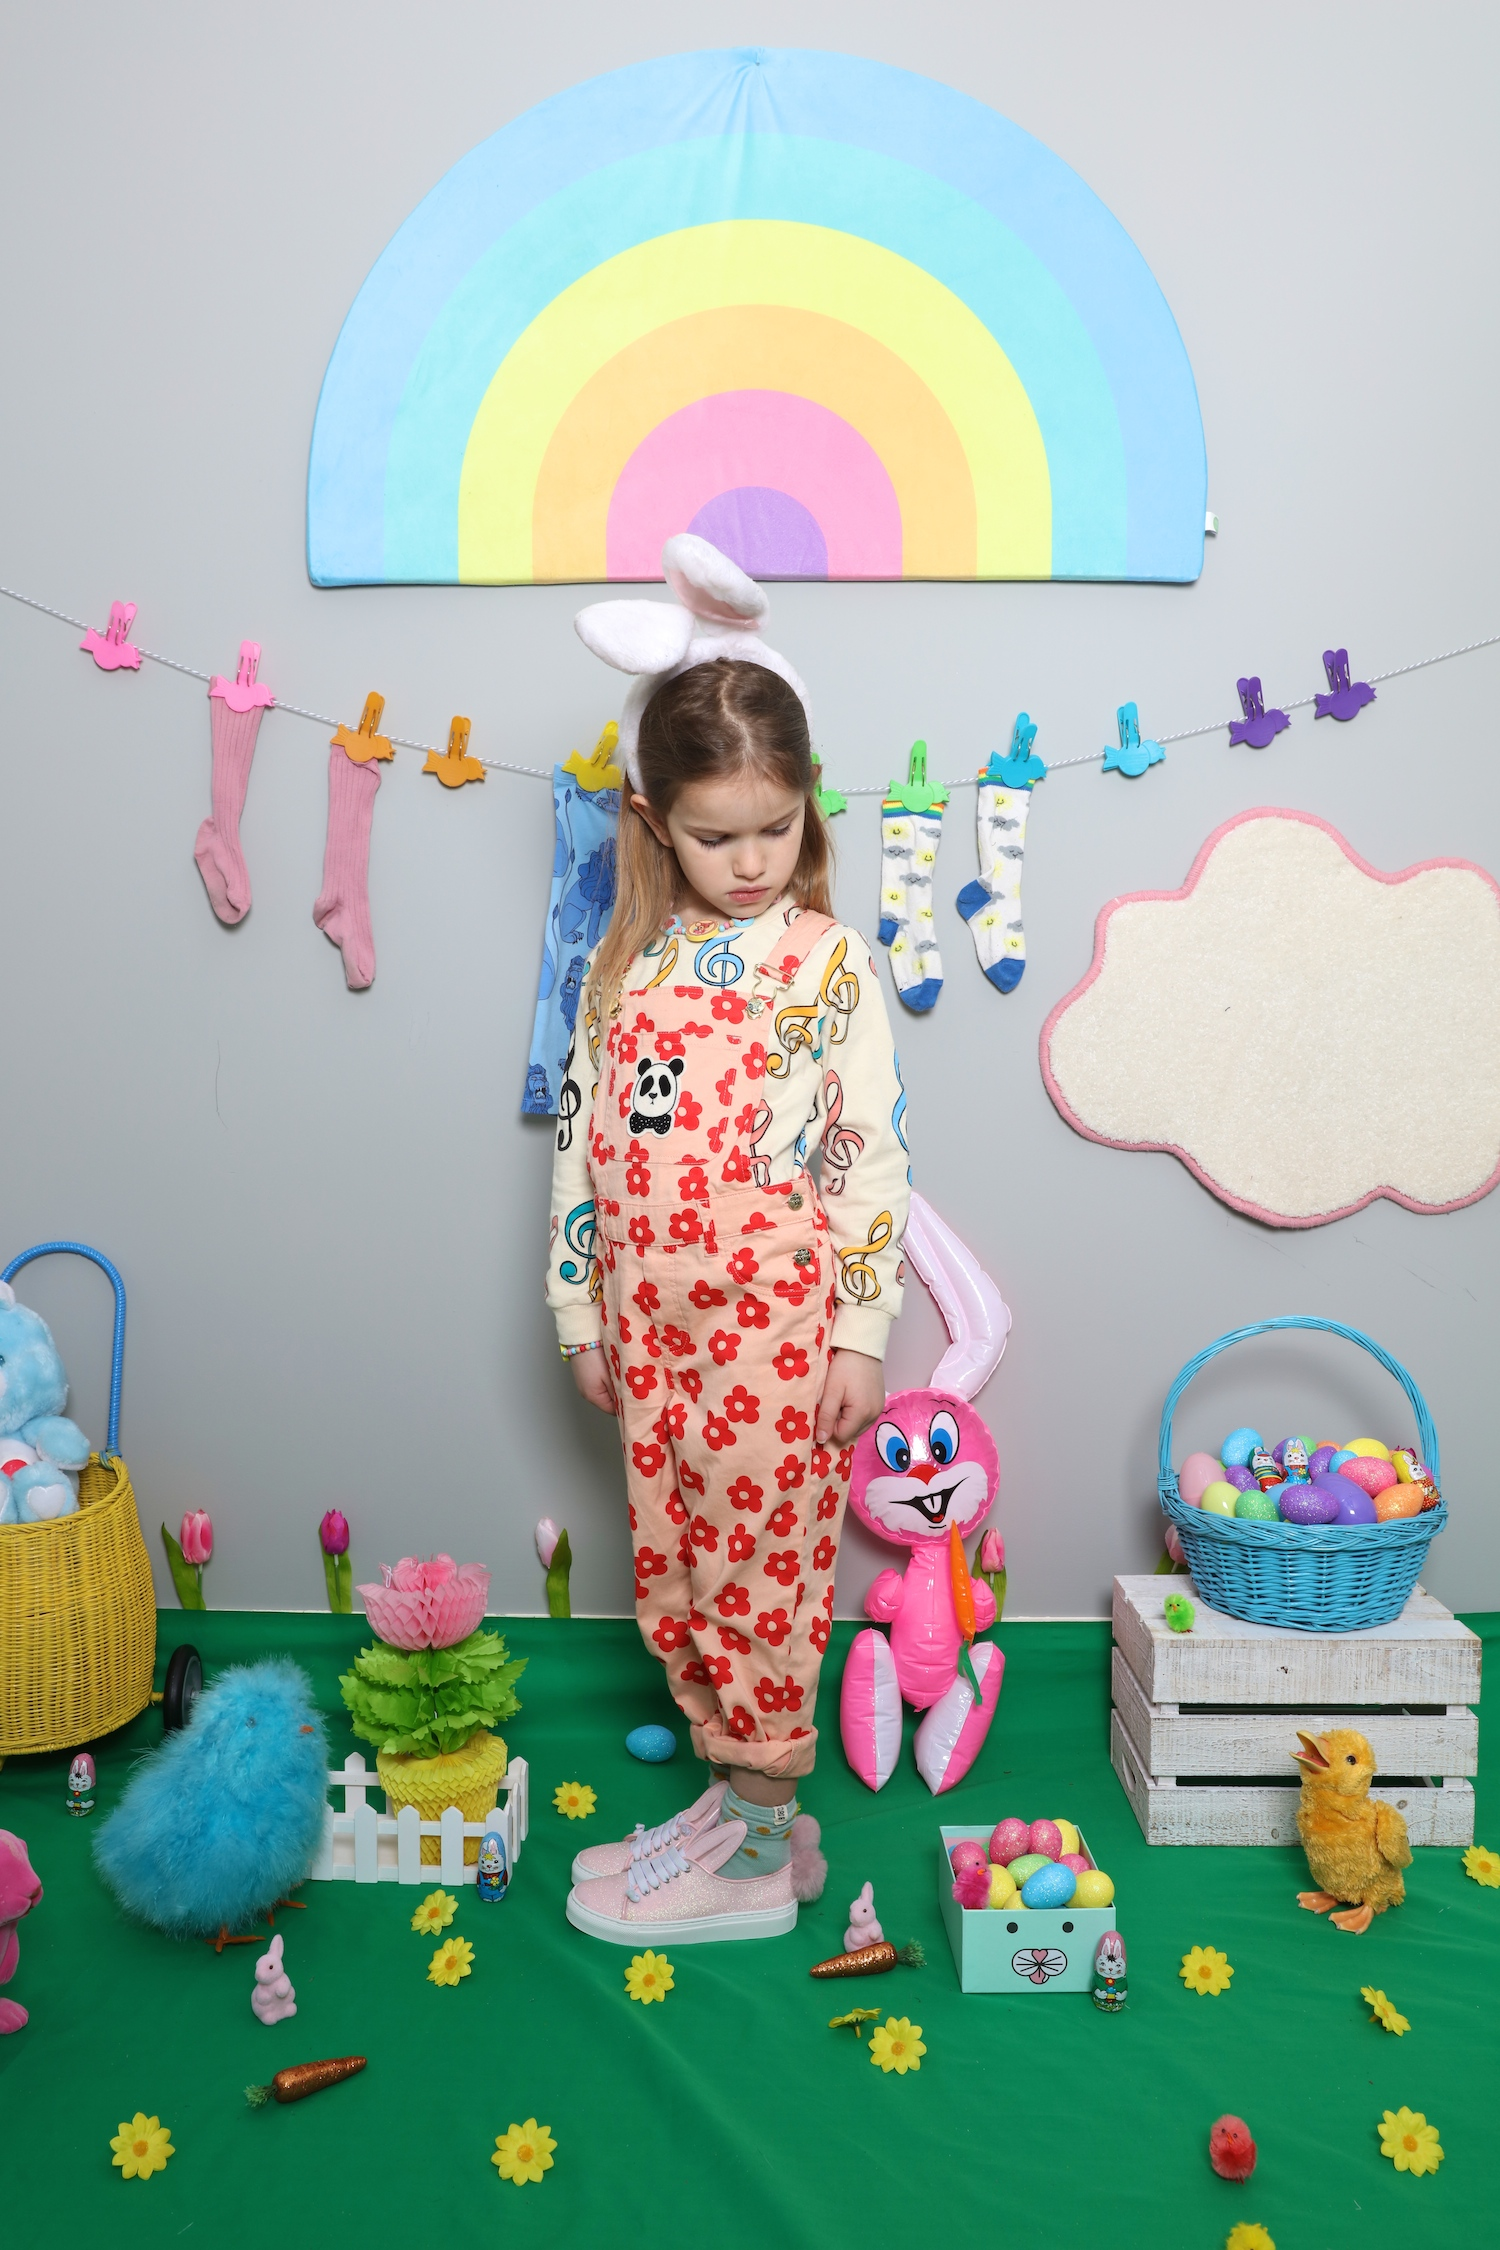 minna_parikka_children_salon_mini_rodini_kids_boetiek_rainbow